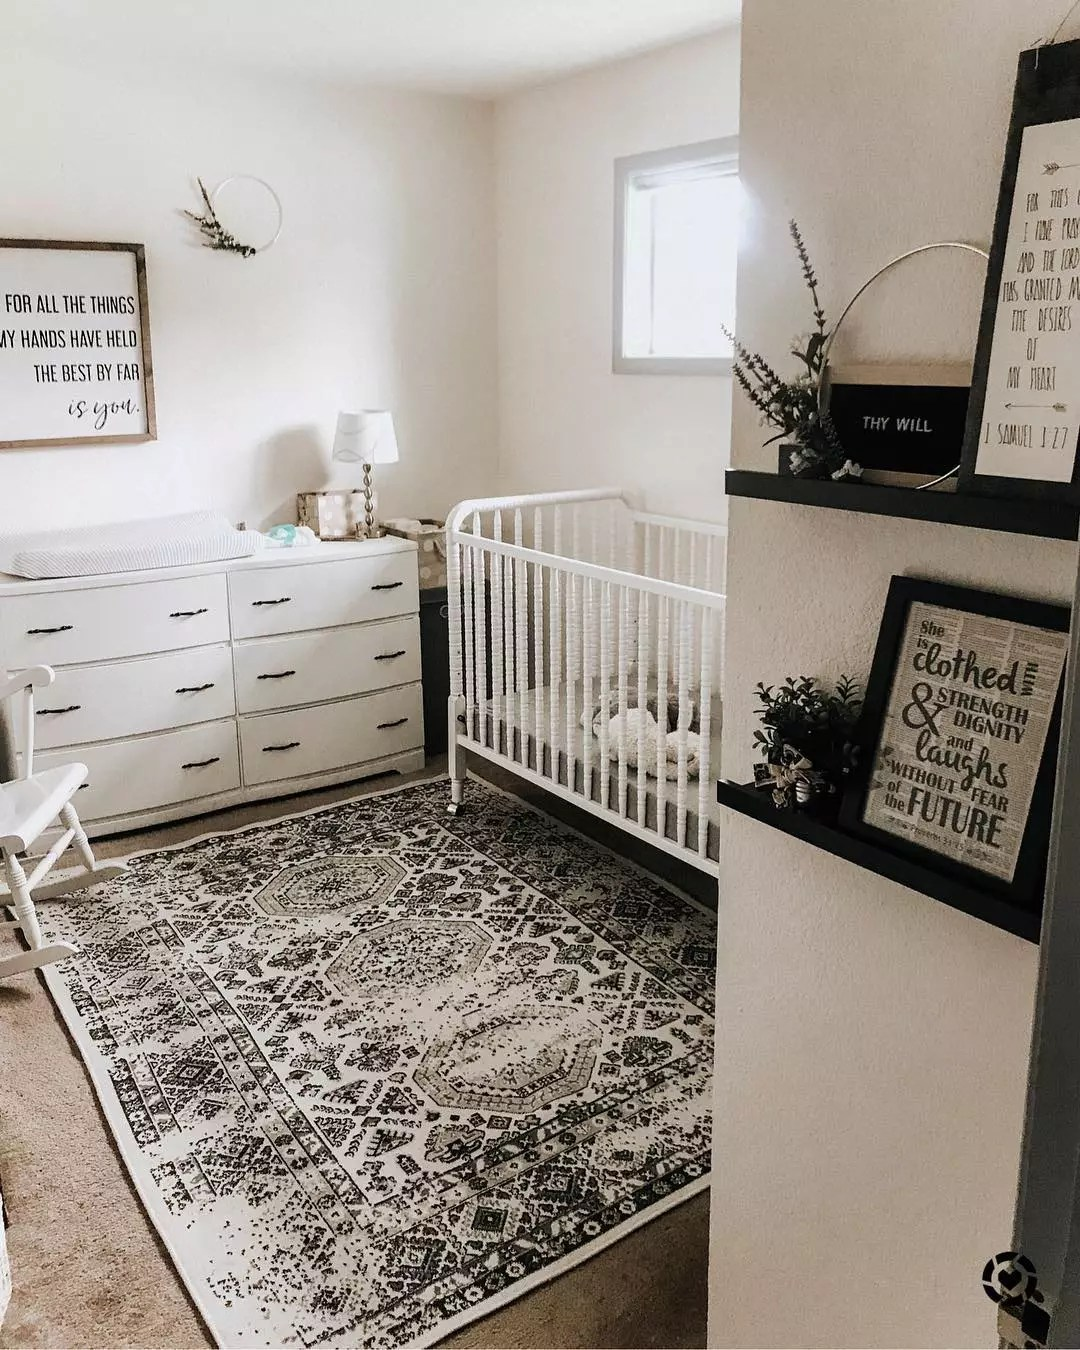 Baby Room with White Carpet and Giant Rug under Crib. Photo by Instagram user @driving_miss_macey